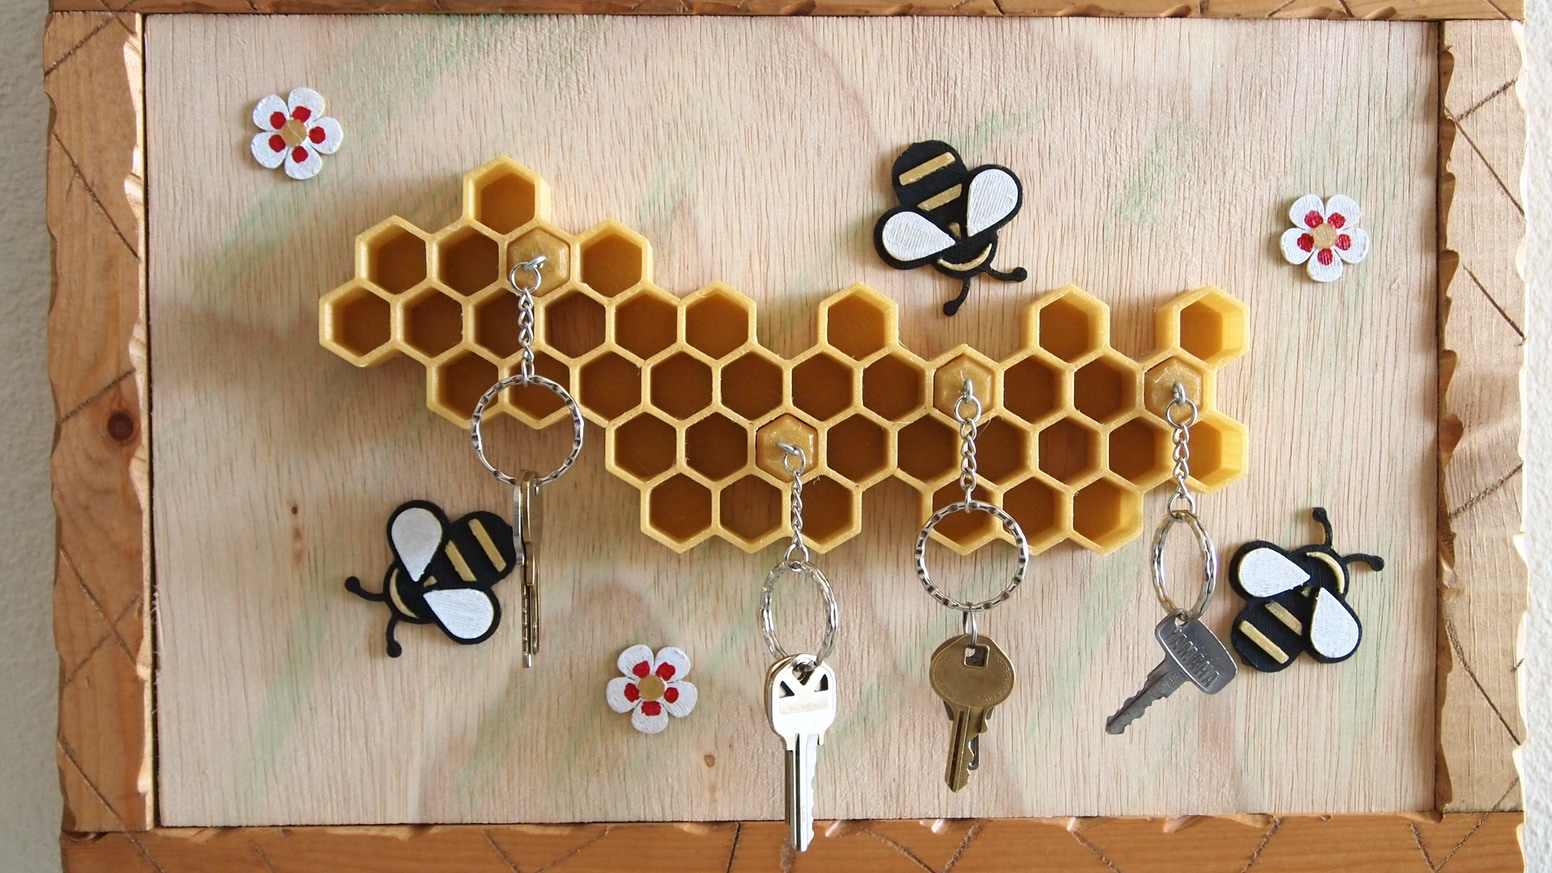 The Honeycomb Key Holder by 3D Ideas — Kickstarter fe2b4a97a